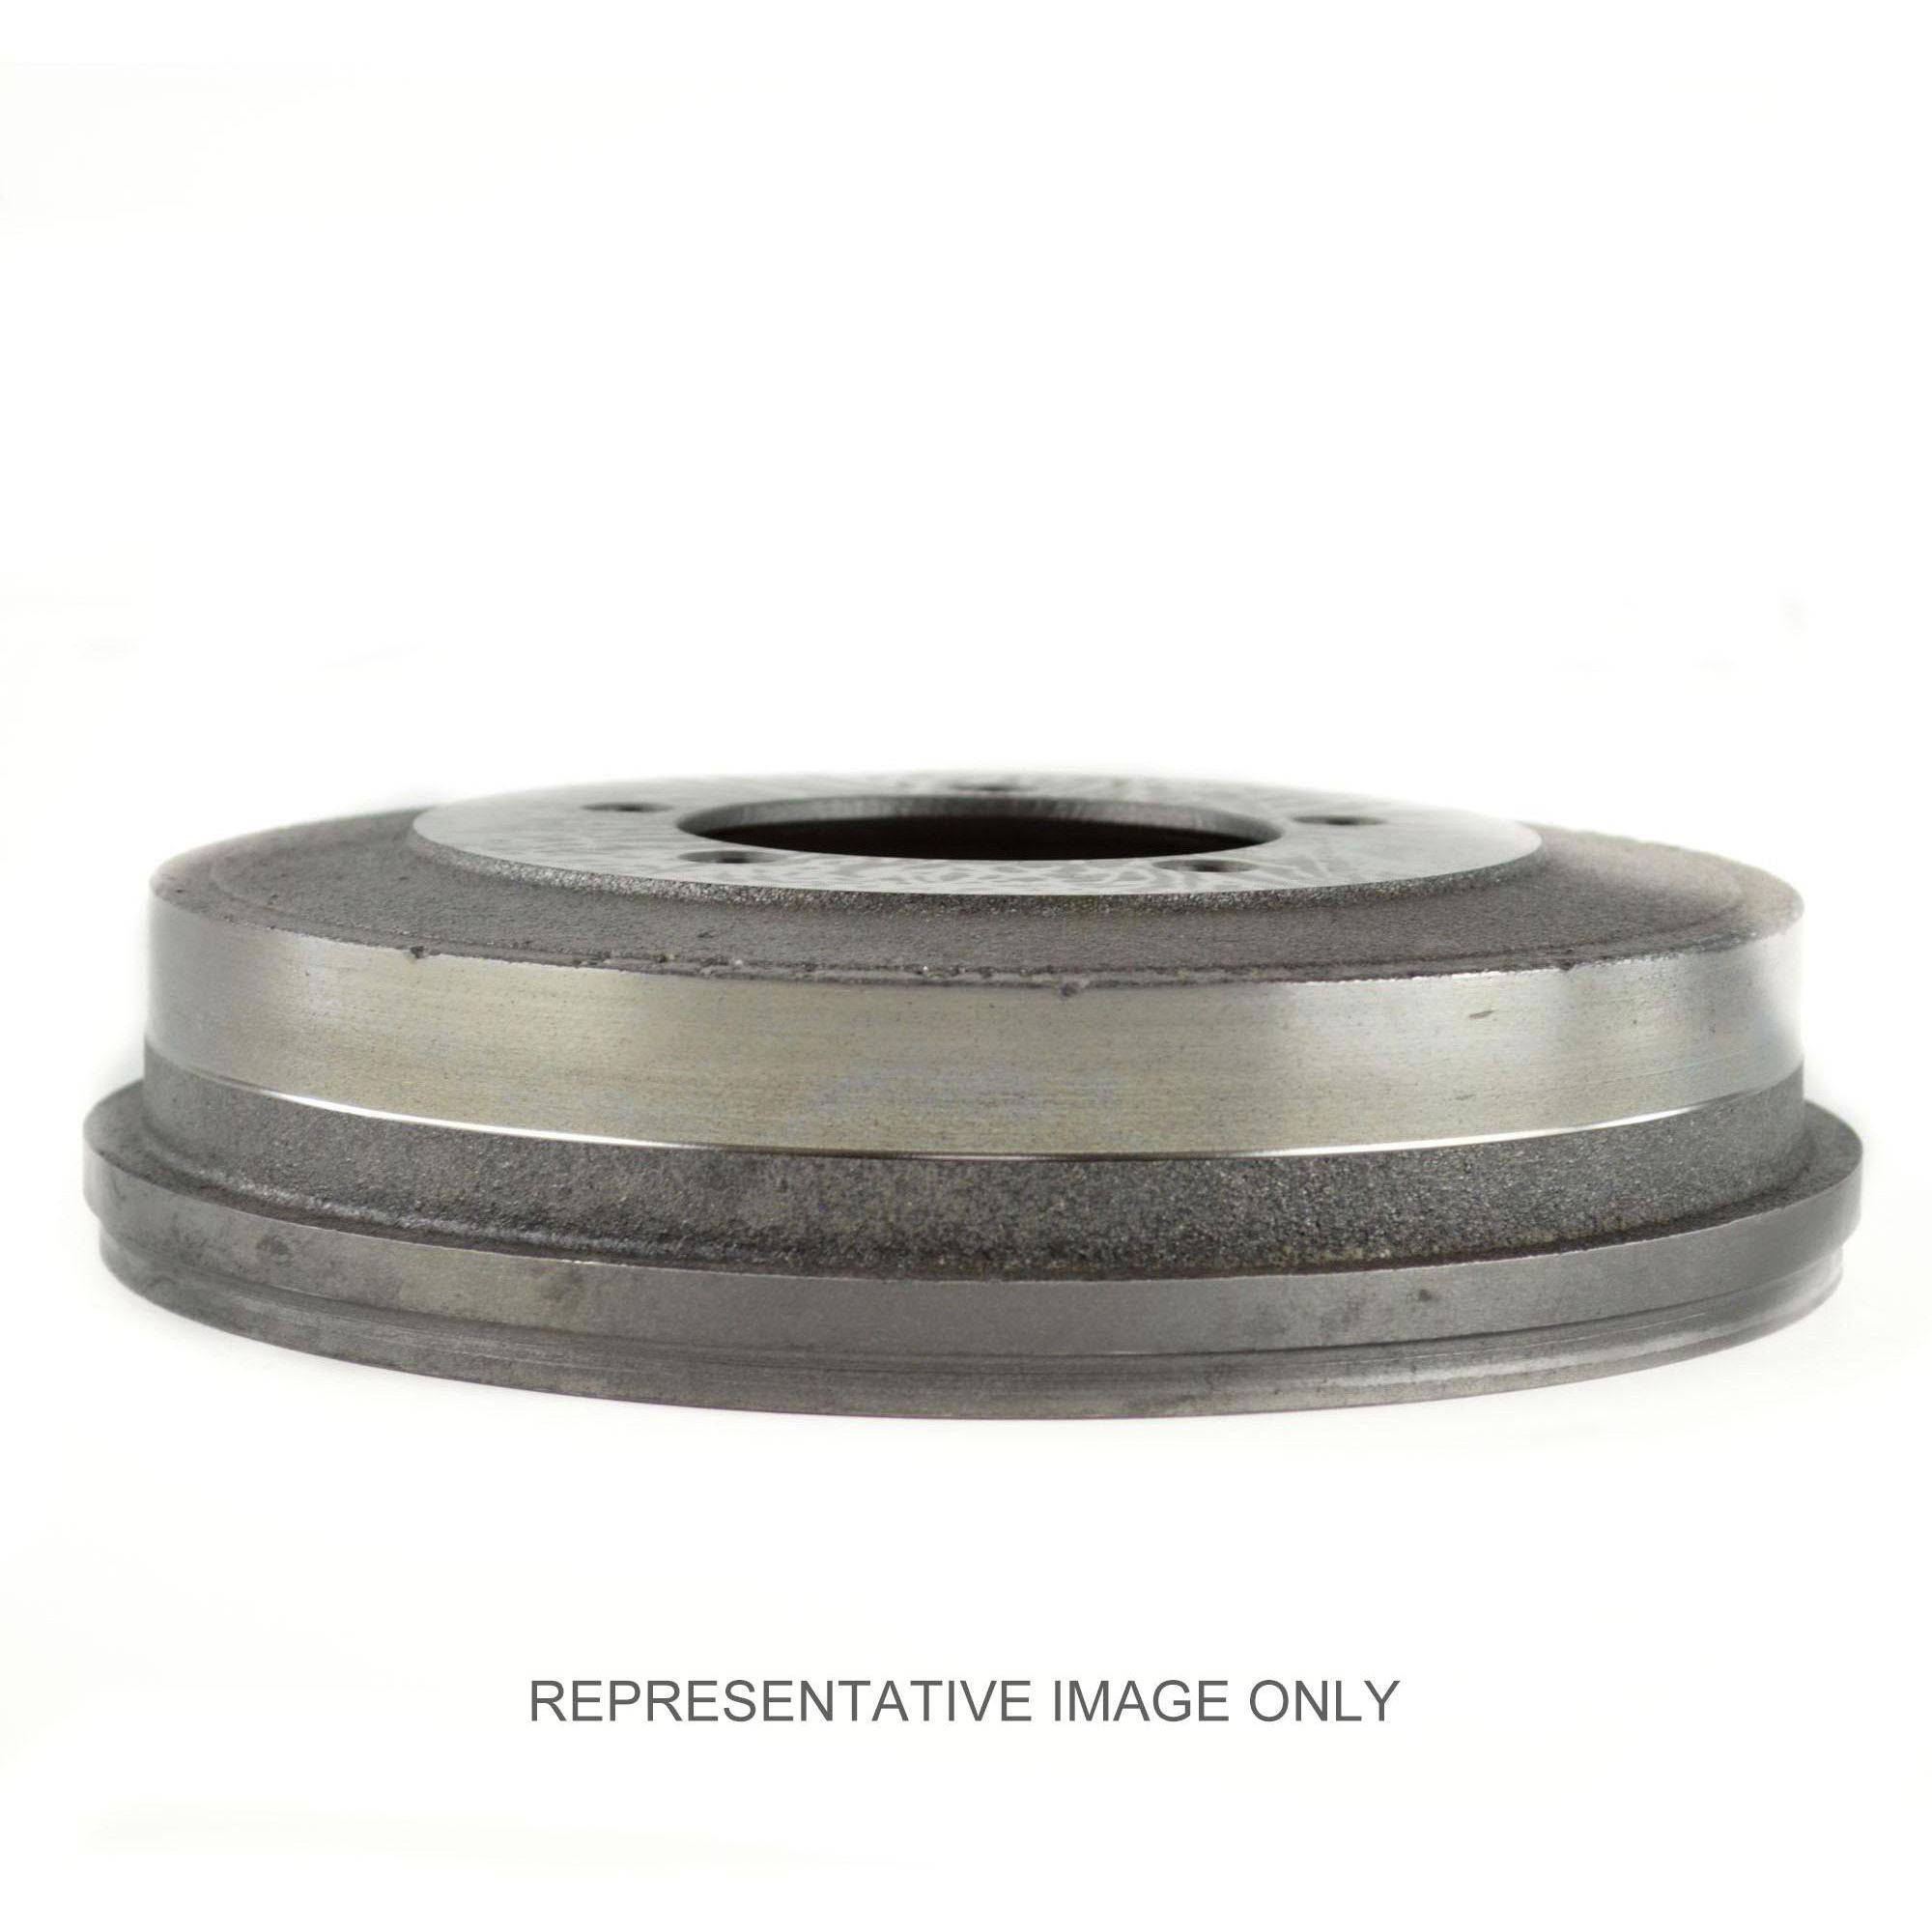 Centric Brake Drum, #122-61043 by Centric